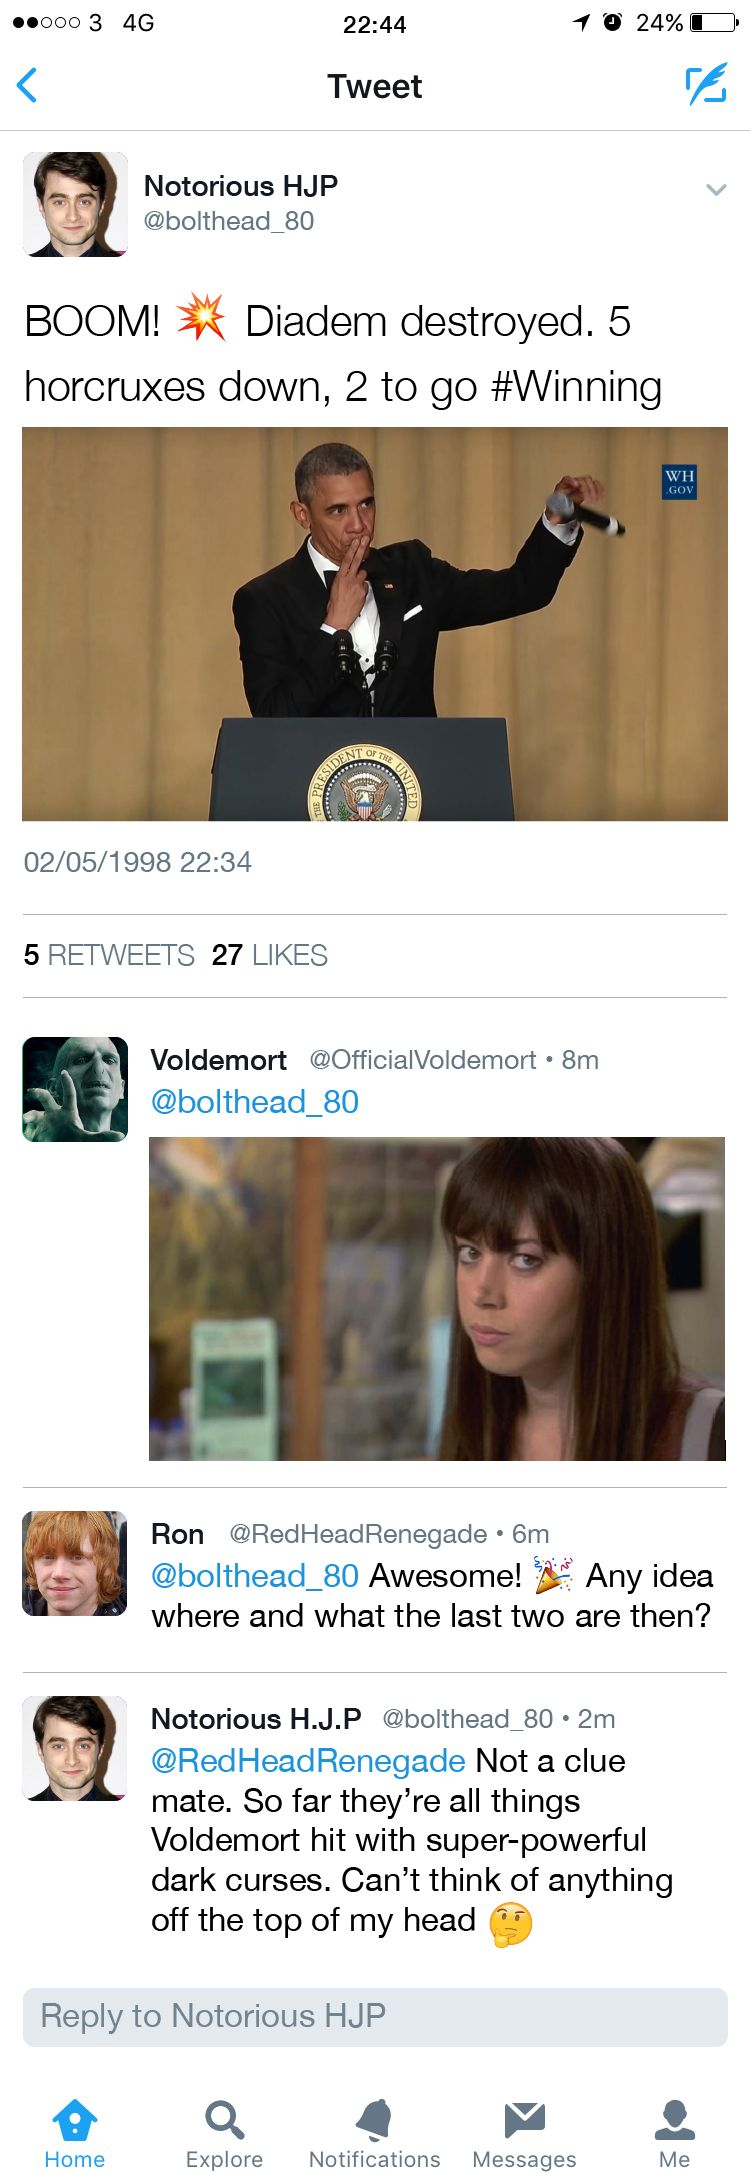 If the Harry Potter characters had social media